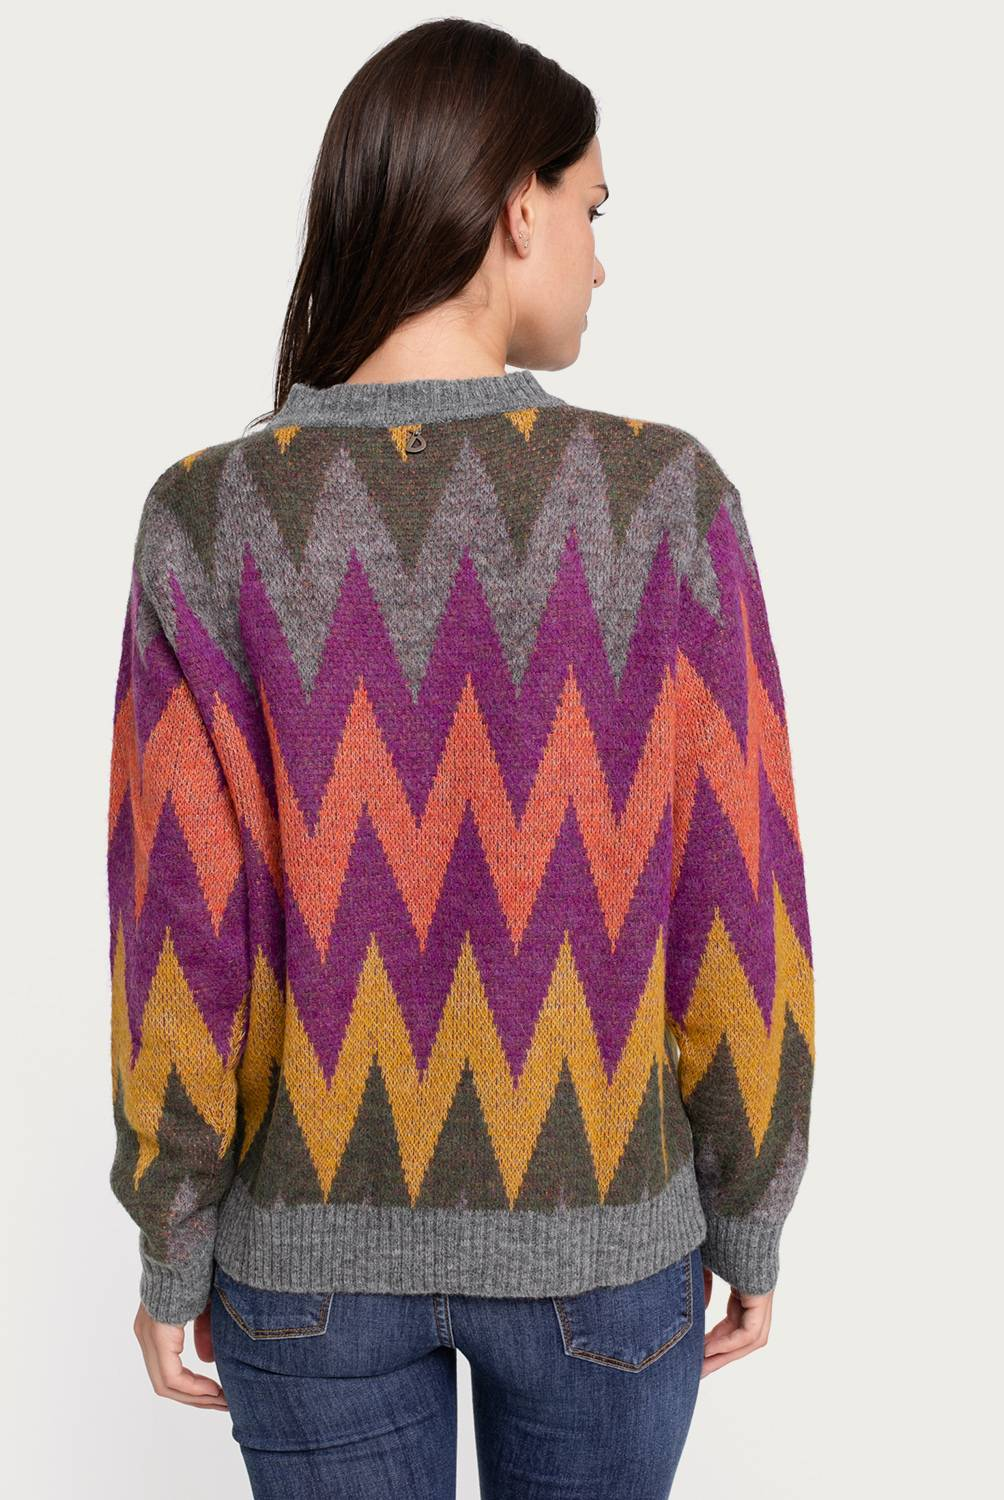 DIXIE - Sweater mujer